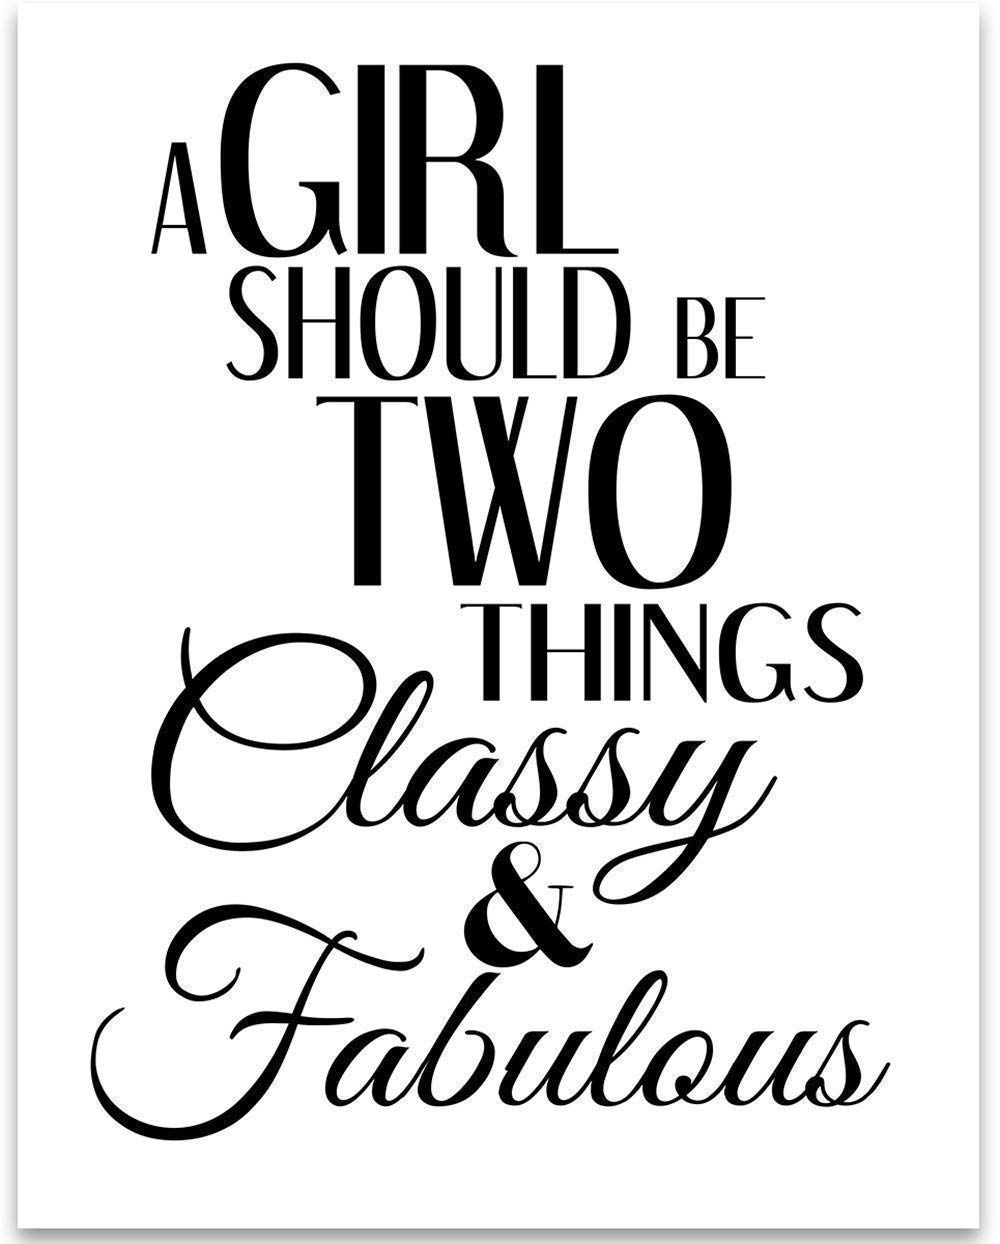 Classy and Fabulous Great Inspirational Gift Under $15 11x14 Unframed Typography Art Print A Girl Must Be Two Things